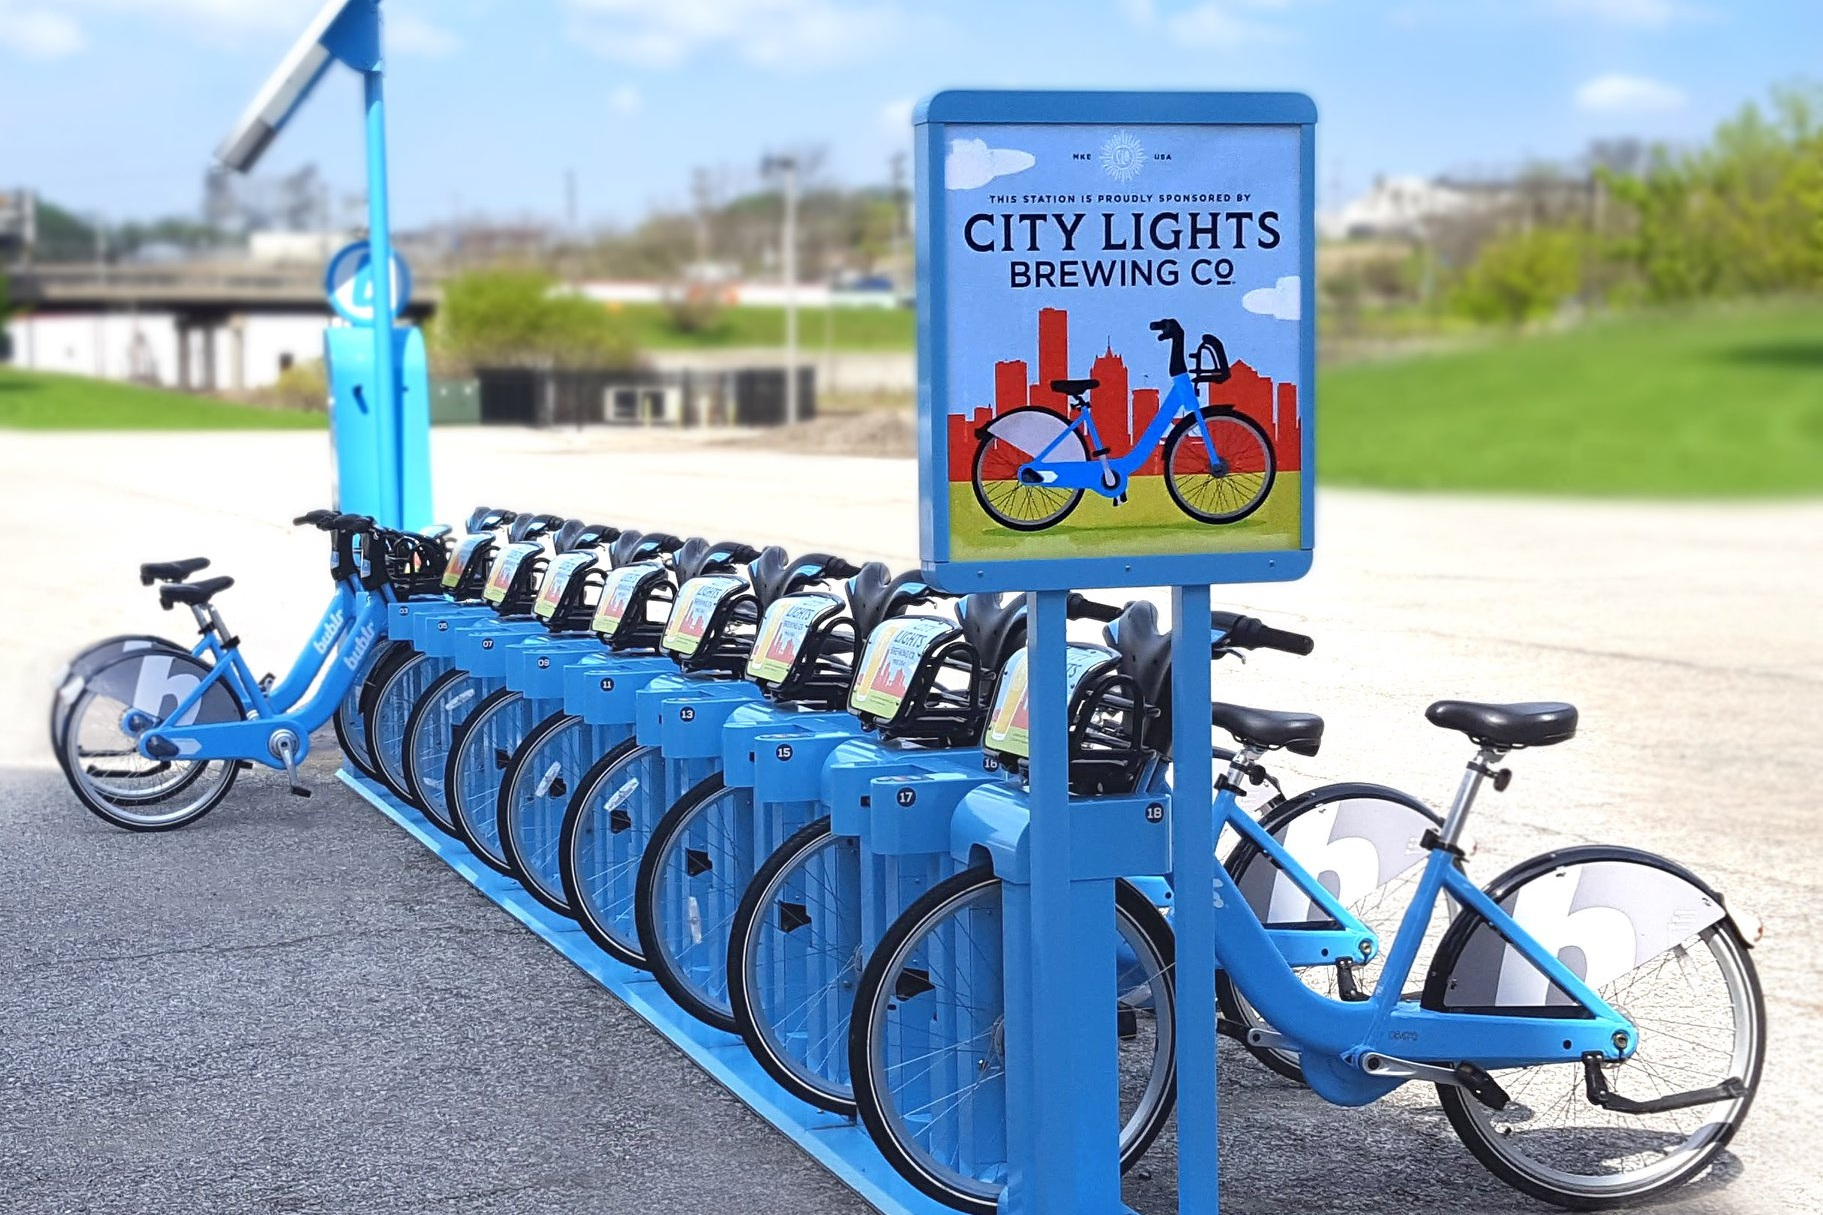 - Getting to and from the Valley can be quick and easy! The Valley is right off I-94, directly accessible by the MCTS Bus Routes 14 and 17 and others nearby, and hosts Bublr Bike Stations at City Lights Brewing Company and Miller Park.